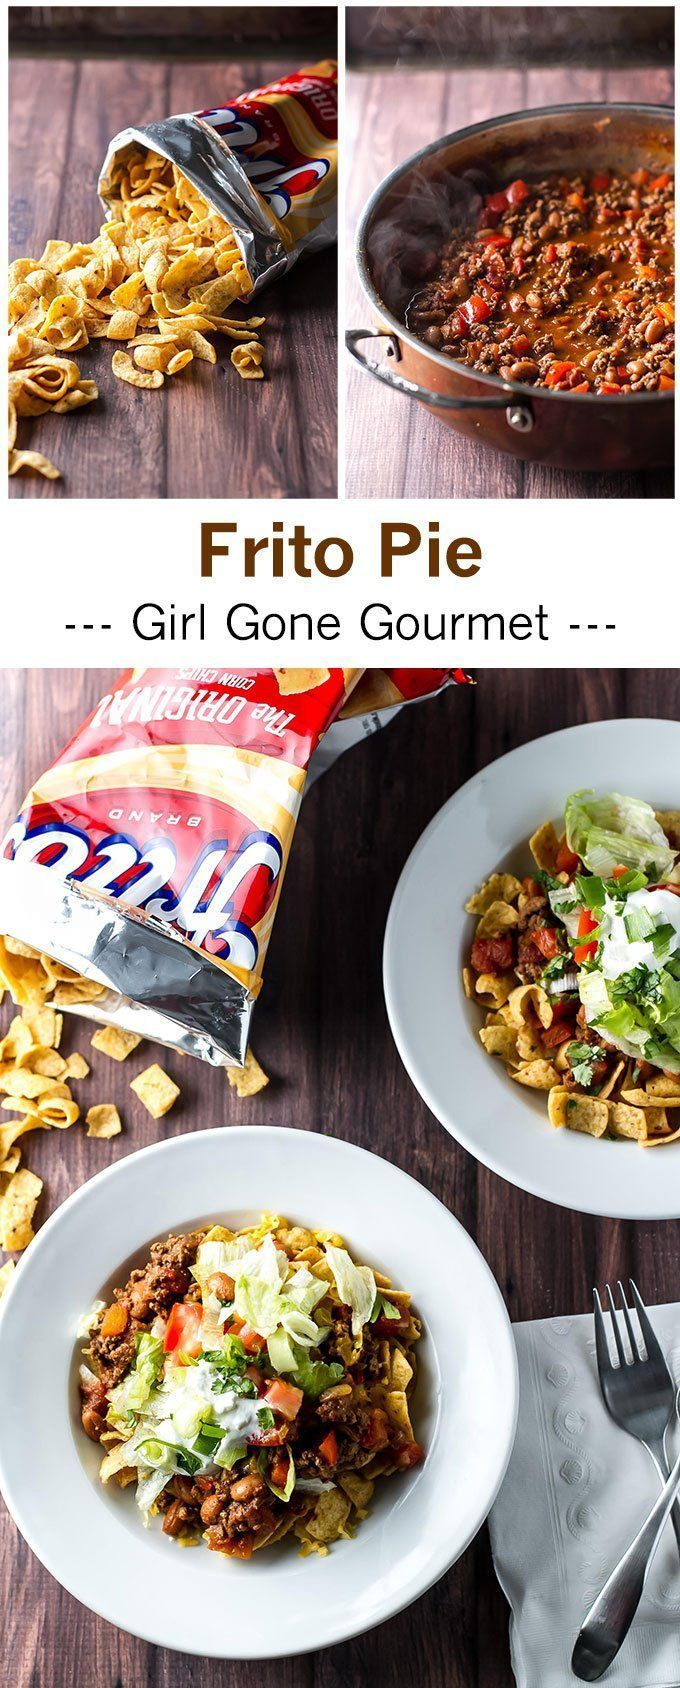 A New Mexico favorite and must-have guilty pleasure! | girlgonegourmet.com